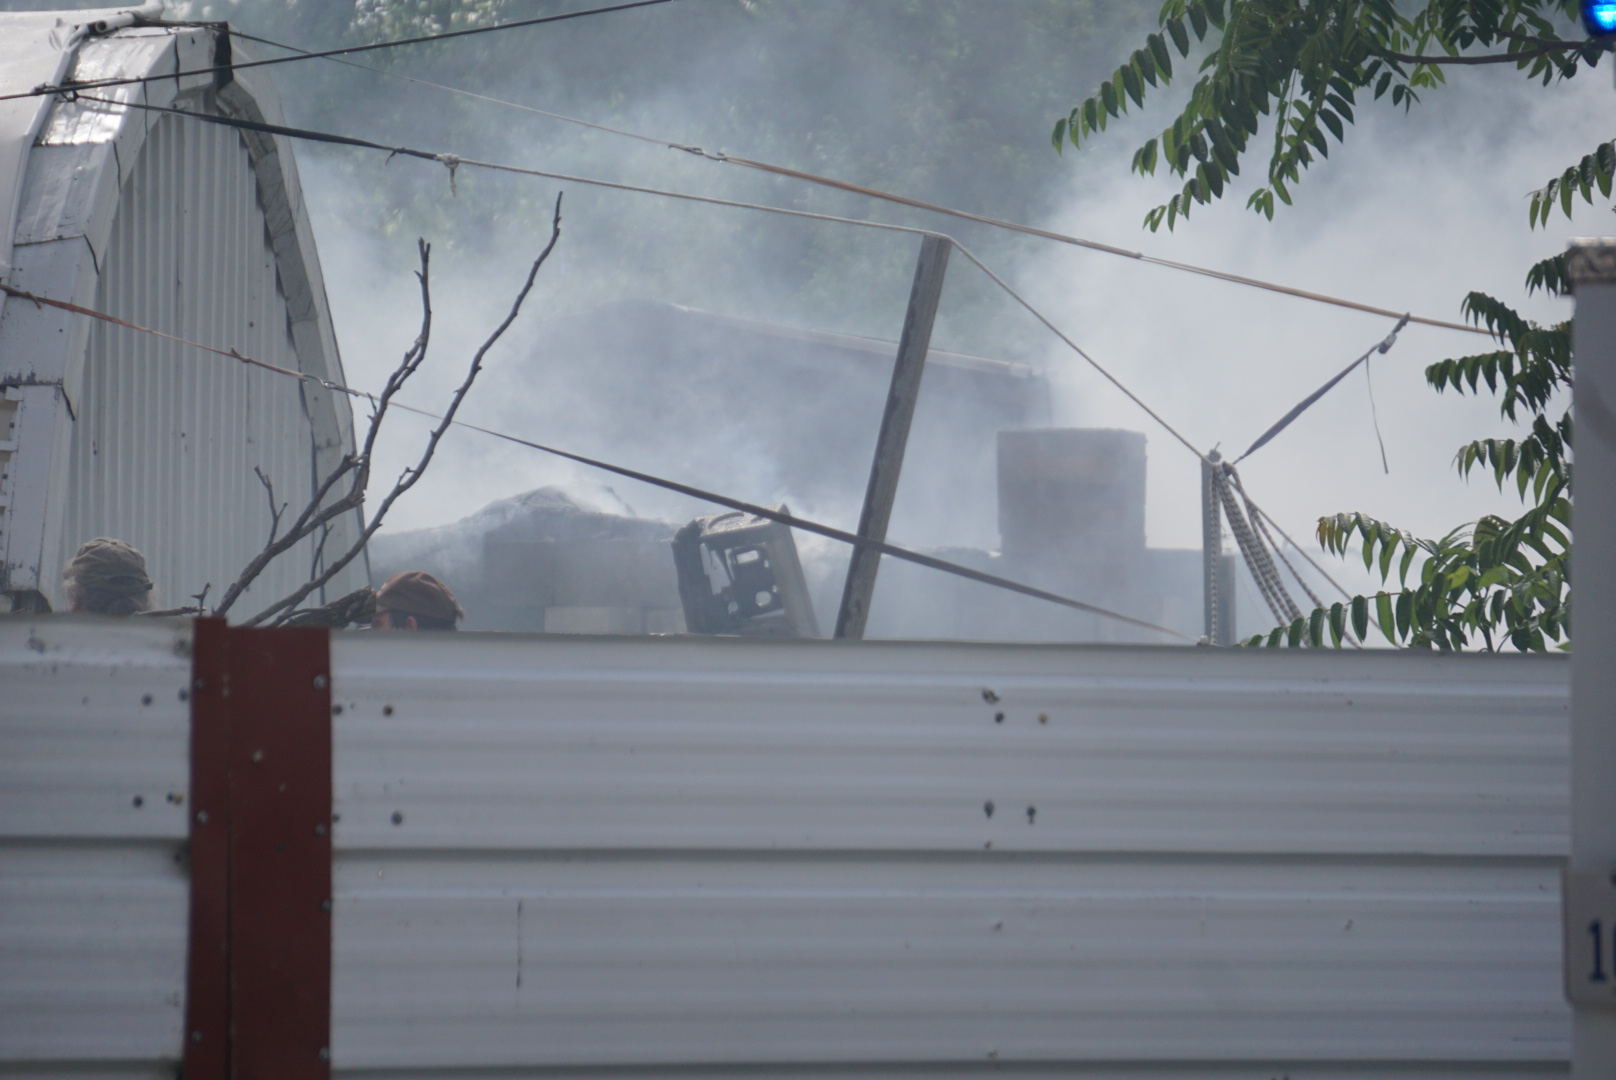 Shed fire on Spaulding Street (LIVE! Photo/Cuatro Jones)